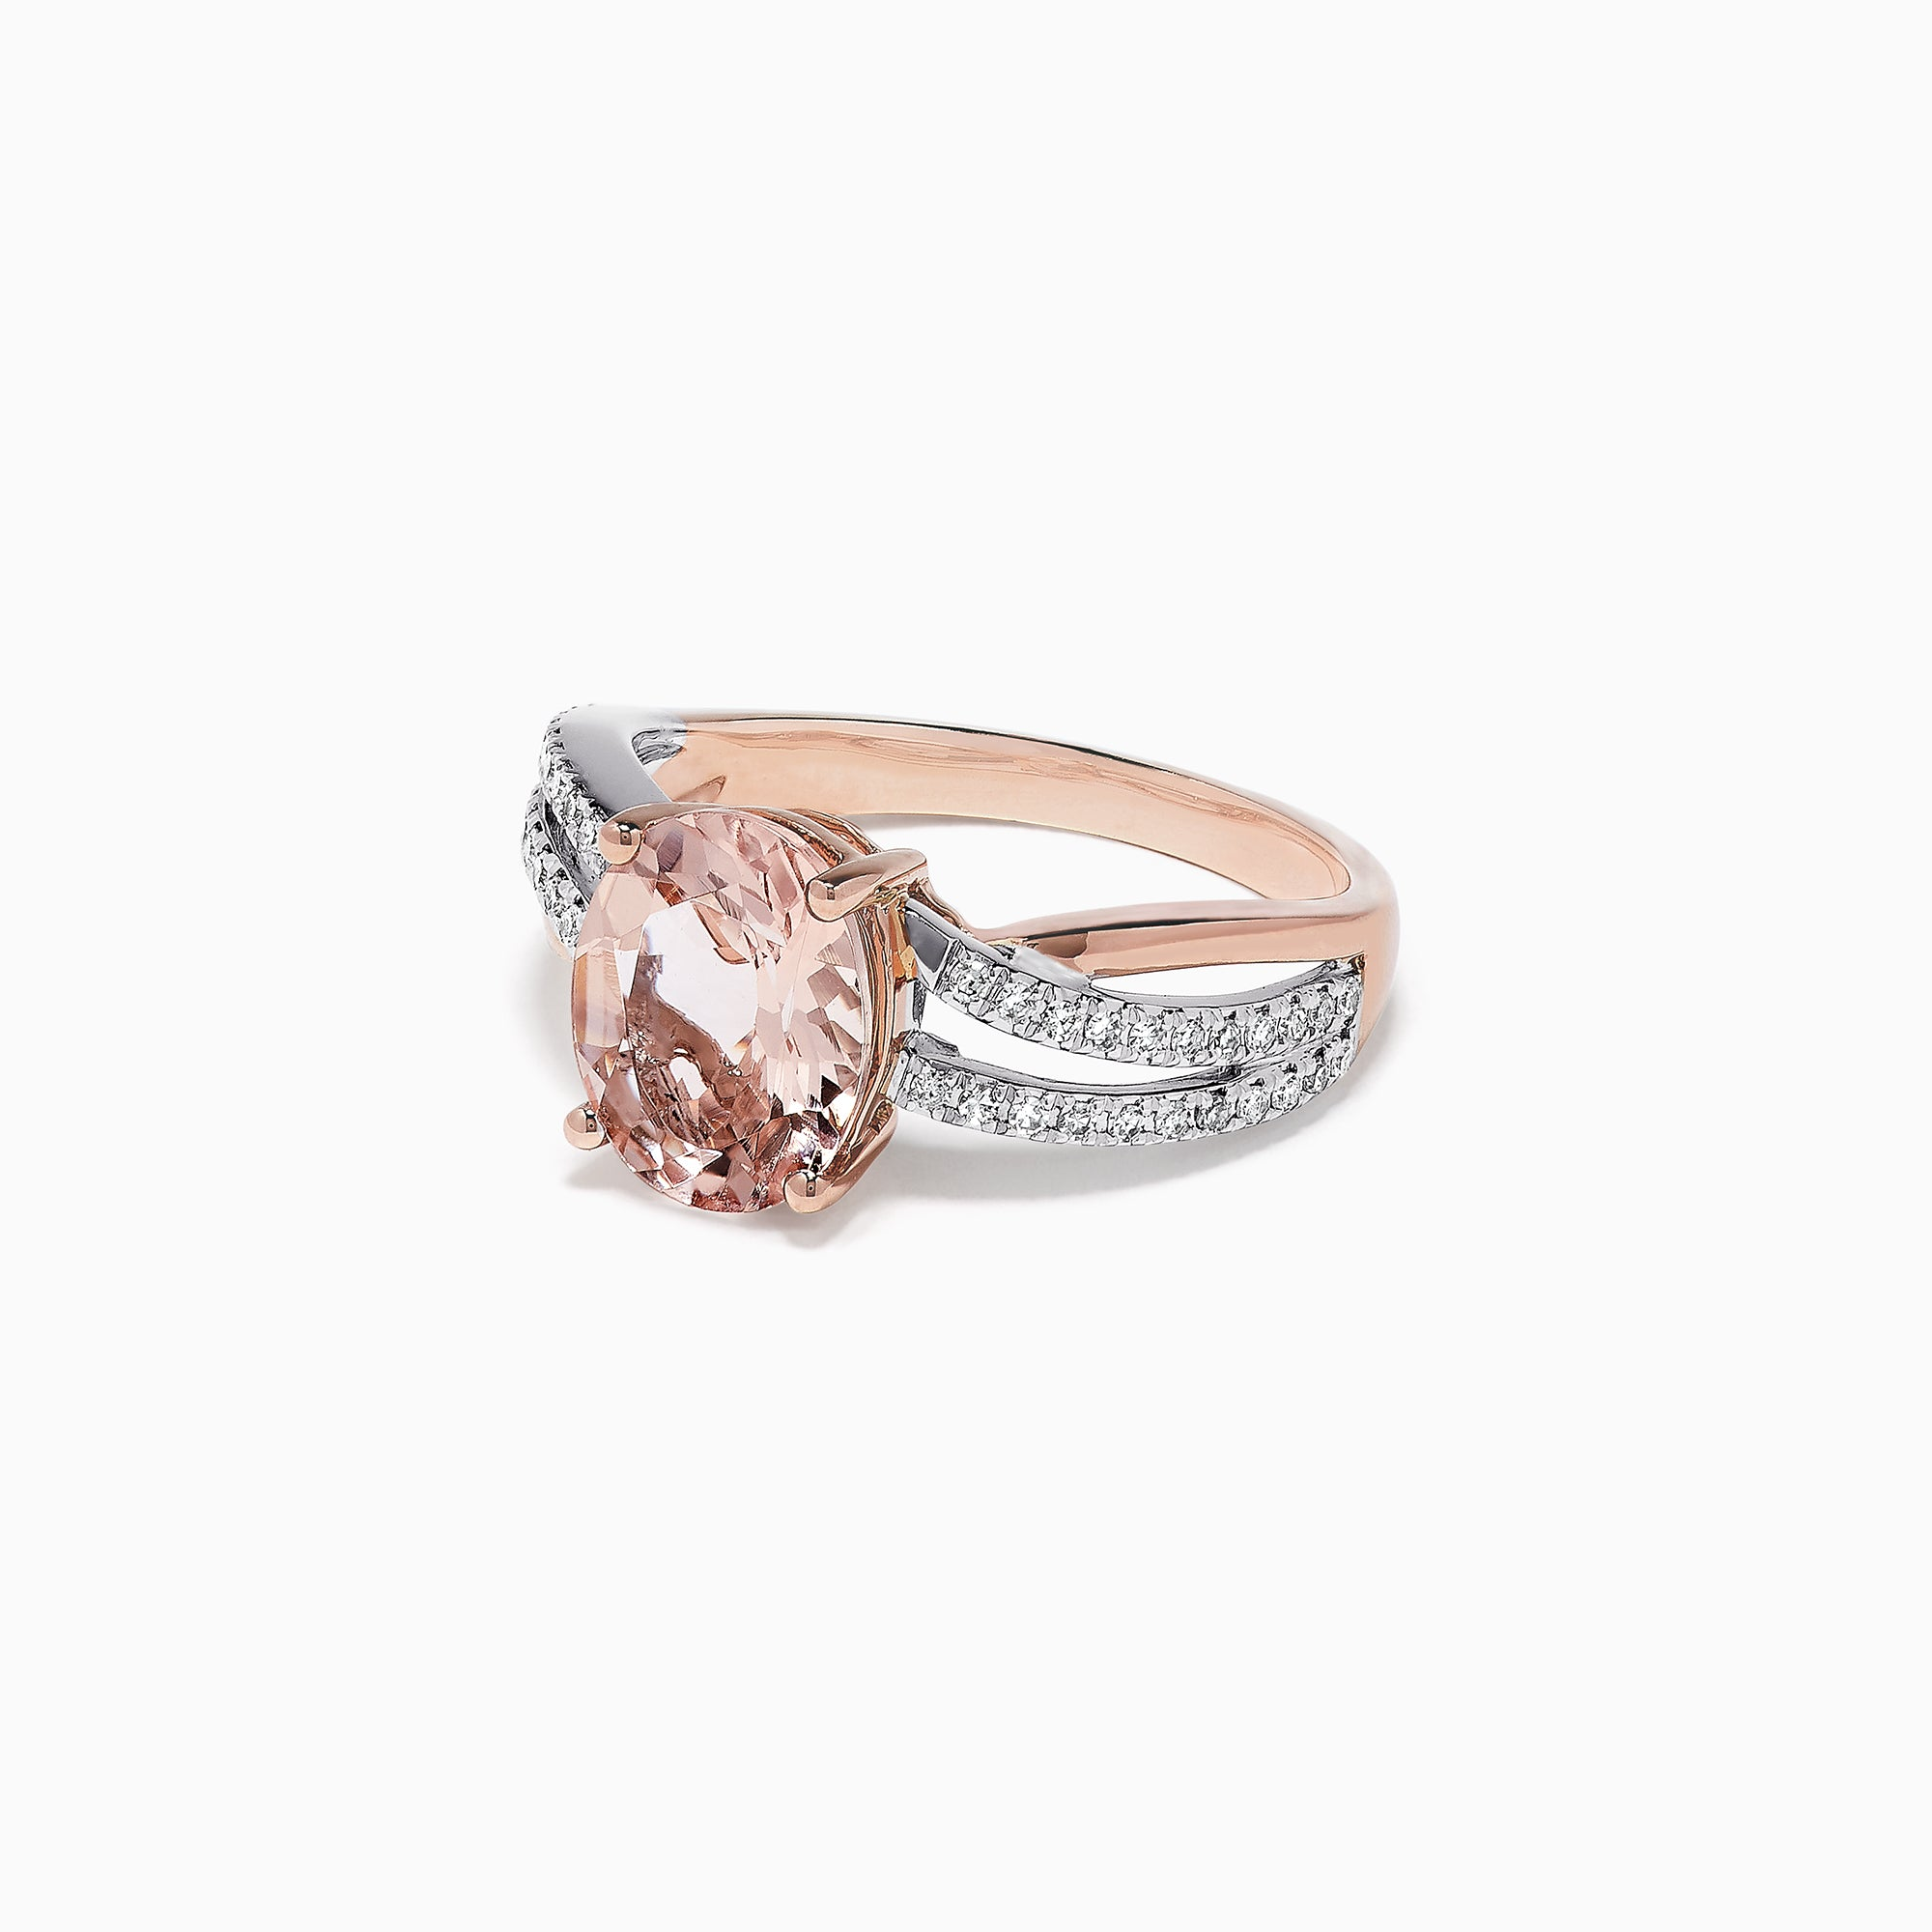 Effy Blush 14K Two Tone Gold Morganite and Diamond Ring, 2.66 TCW